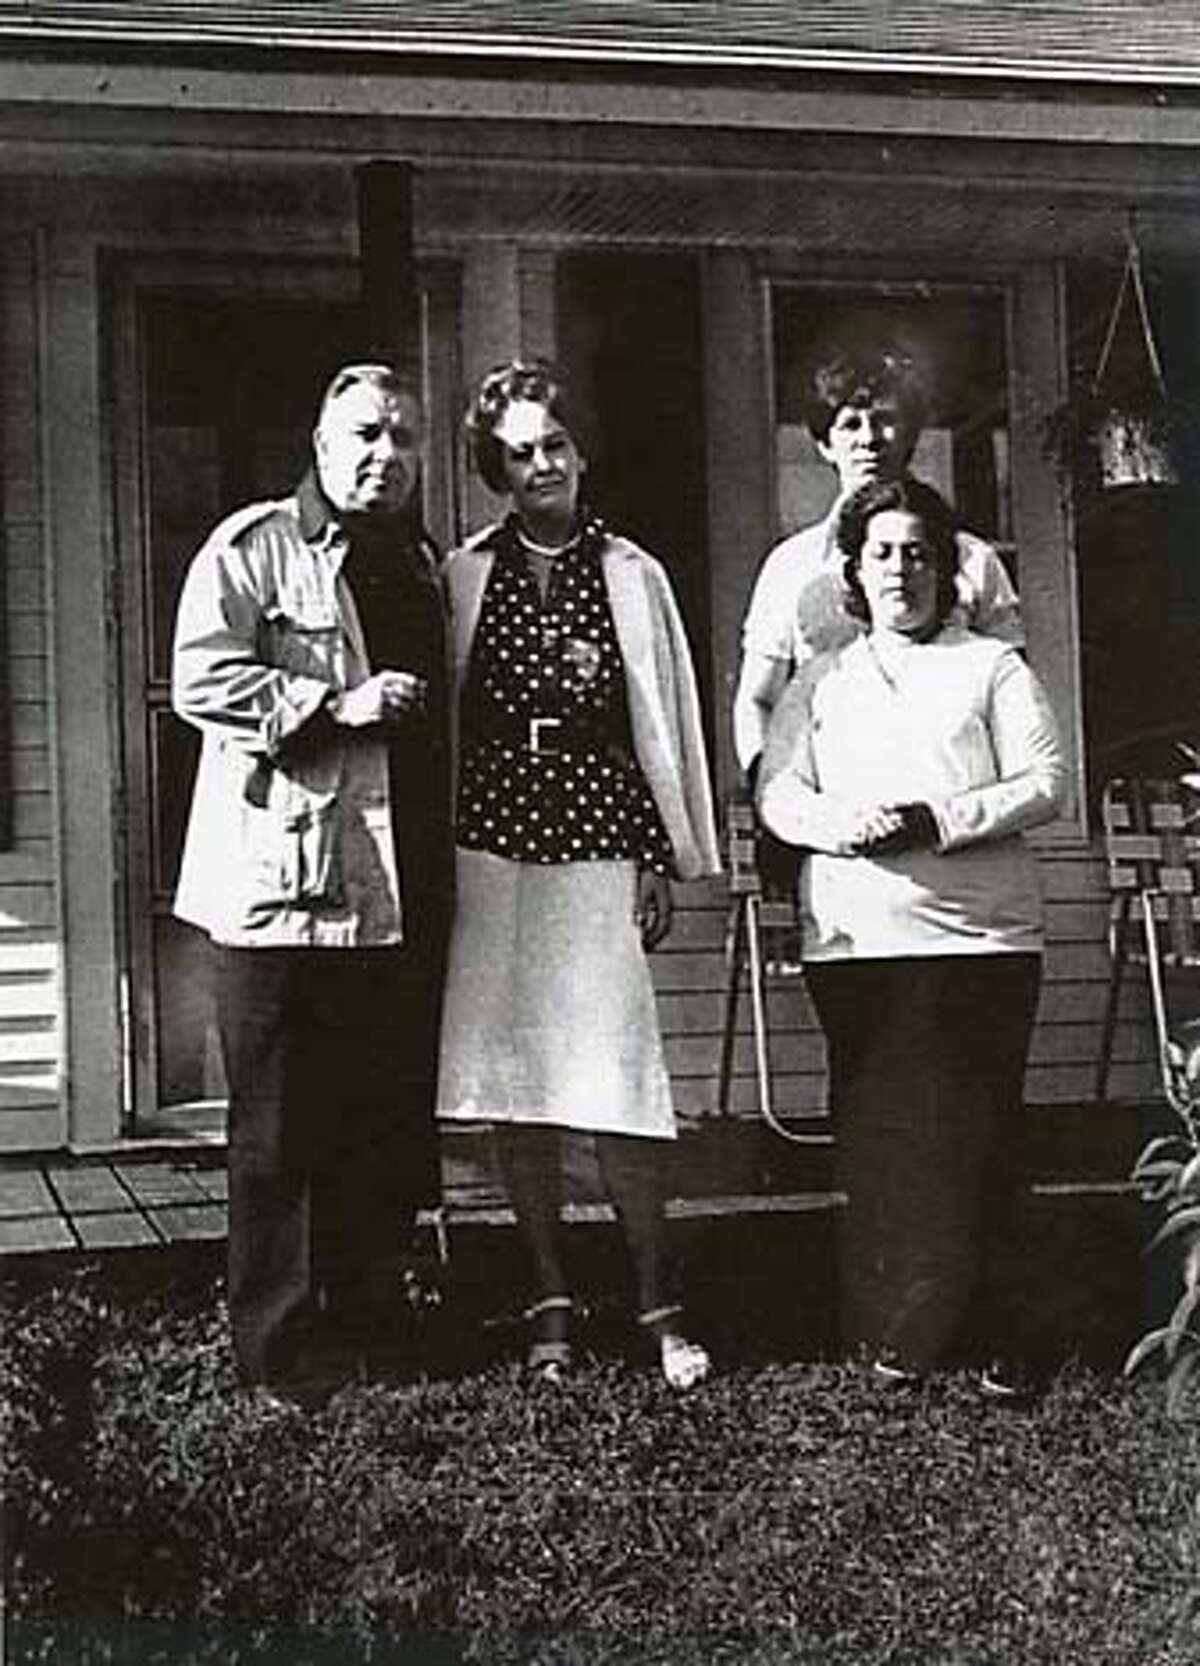 Demonologist Ed and Lorraine Warren (left) with Lui and Dale Passetto, whose home was supposedly inhabited by super natural forces. Credit: UPI 1981.